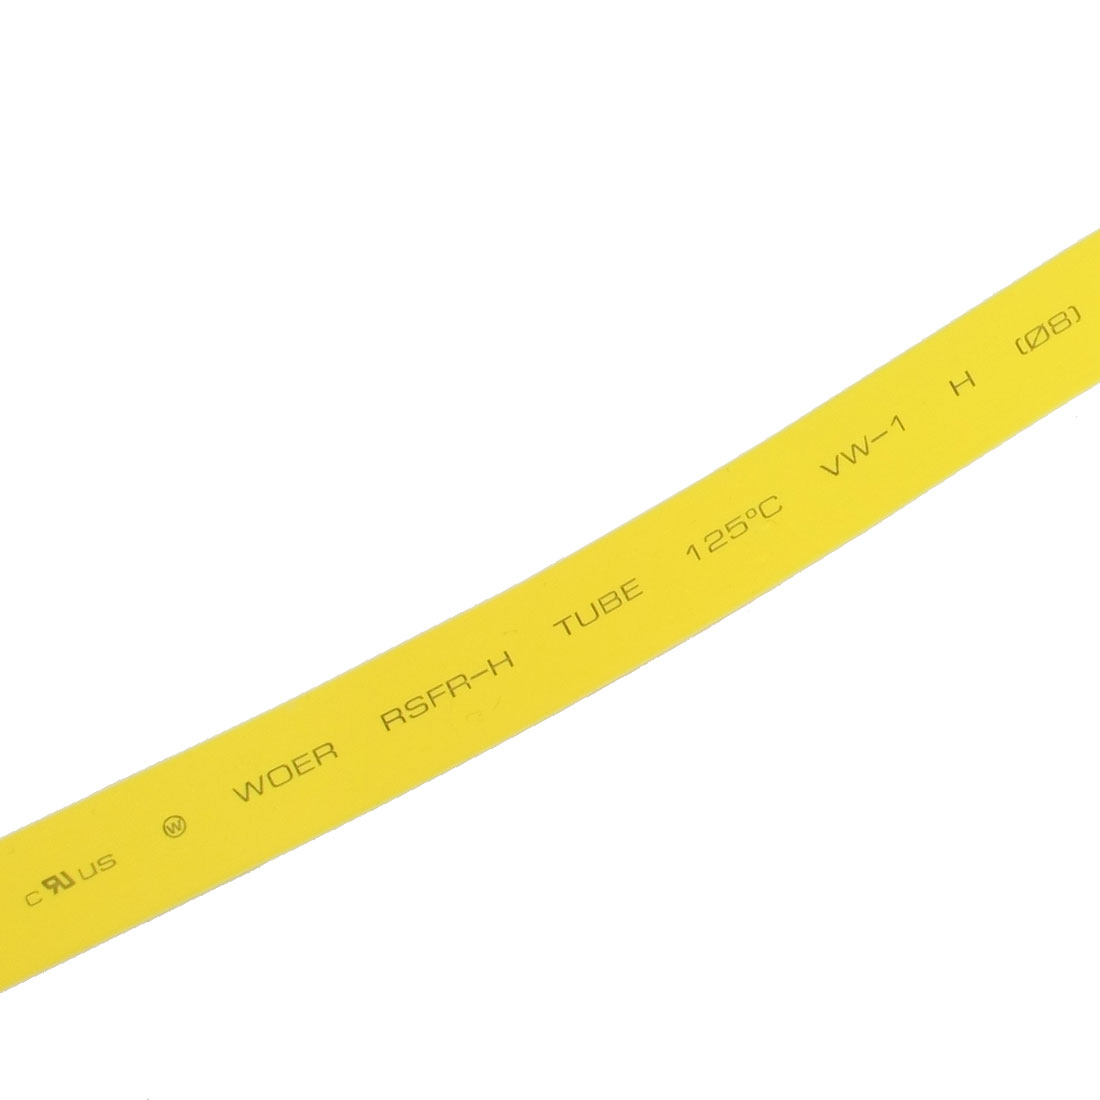 Ratio 2:1 4M 13Ft 8.0mm Dia. Heat Shrinkable Tube Shrinking Tubing Yellow